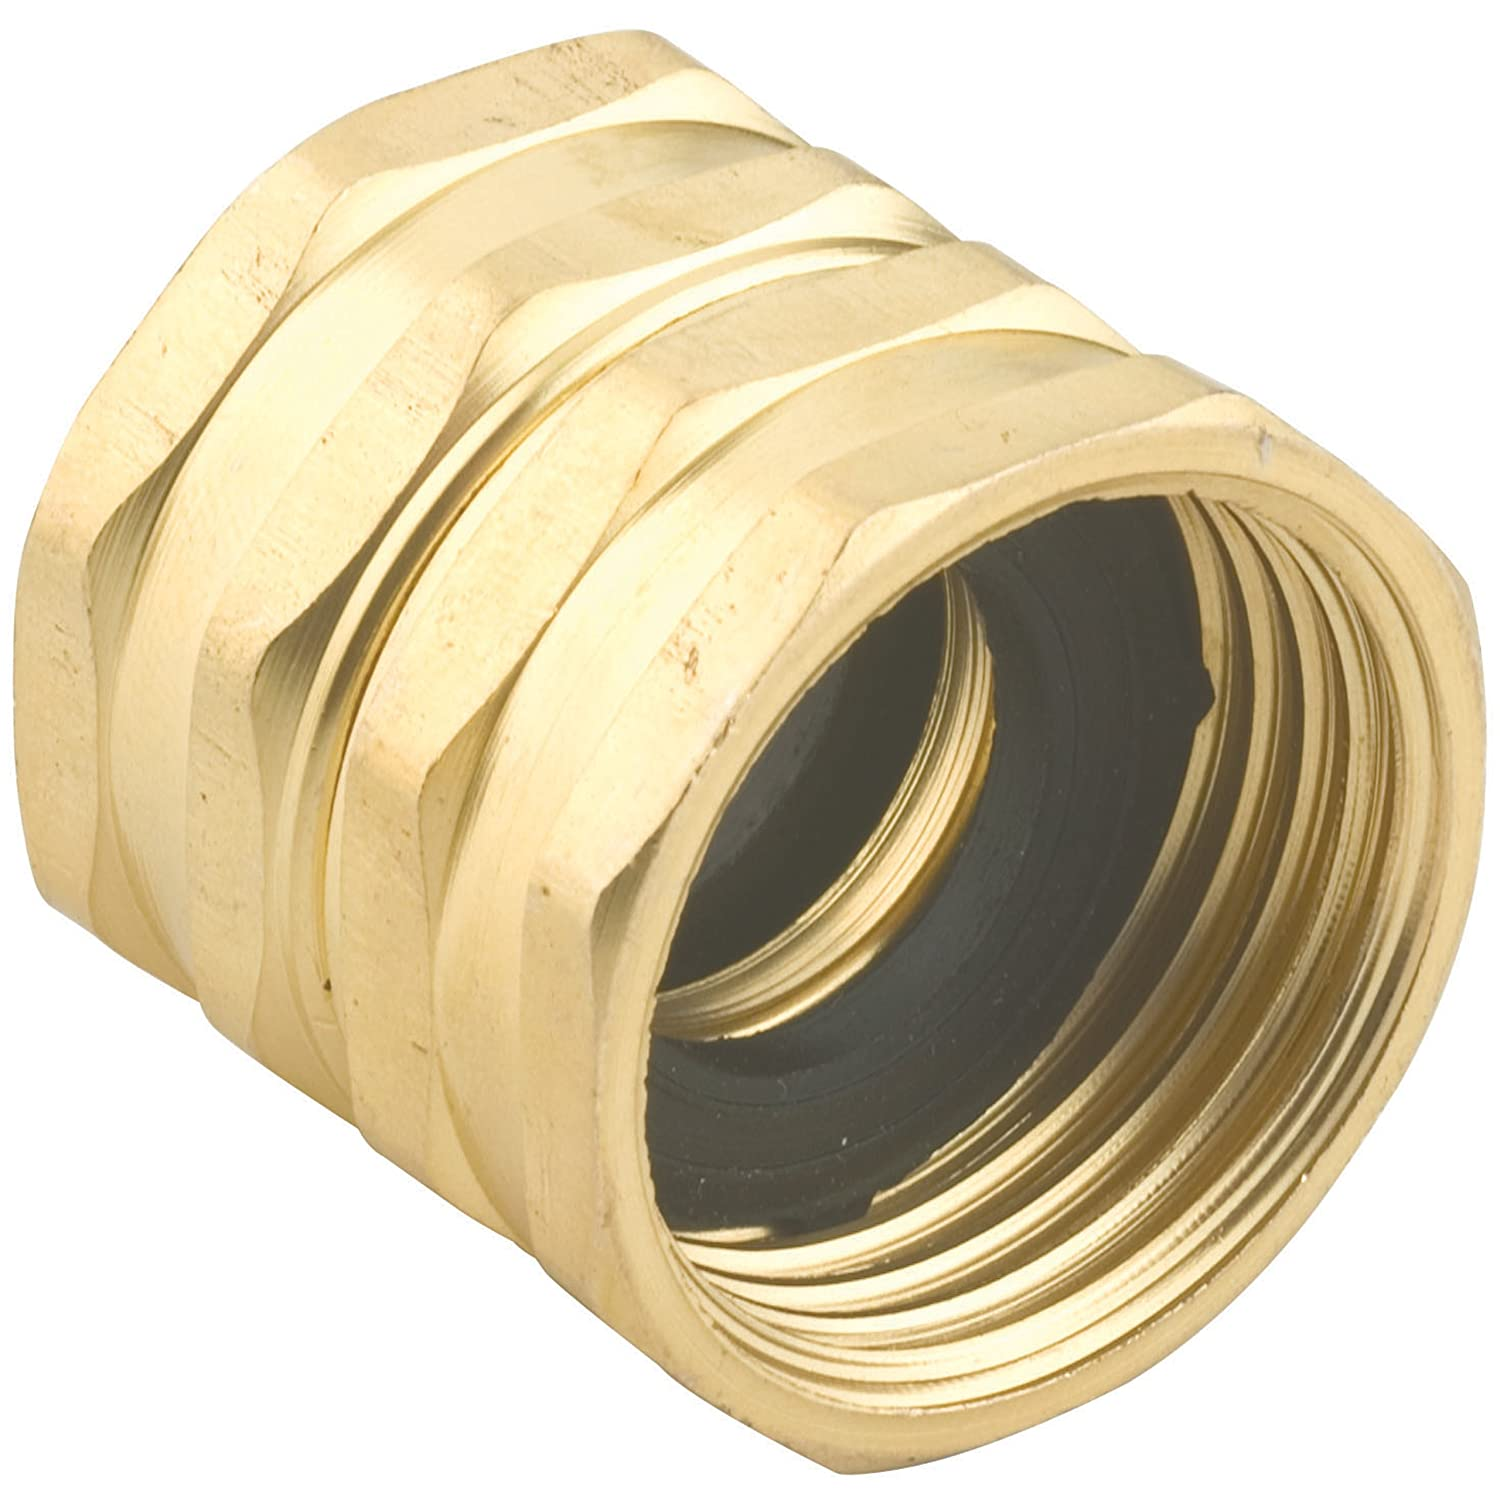 Perfect Amazon.com : Gilmour 7FHS7FH Double Female Swivel Brass Connector, 3/4 Inch  By 3/4 Inch : Garden Hose Parts : Garden U0026 Outdoor